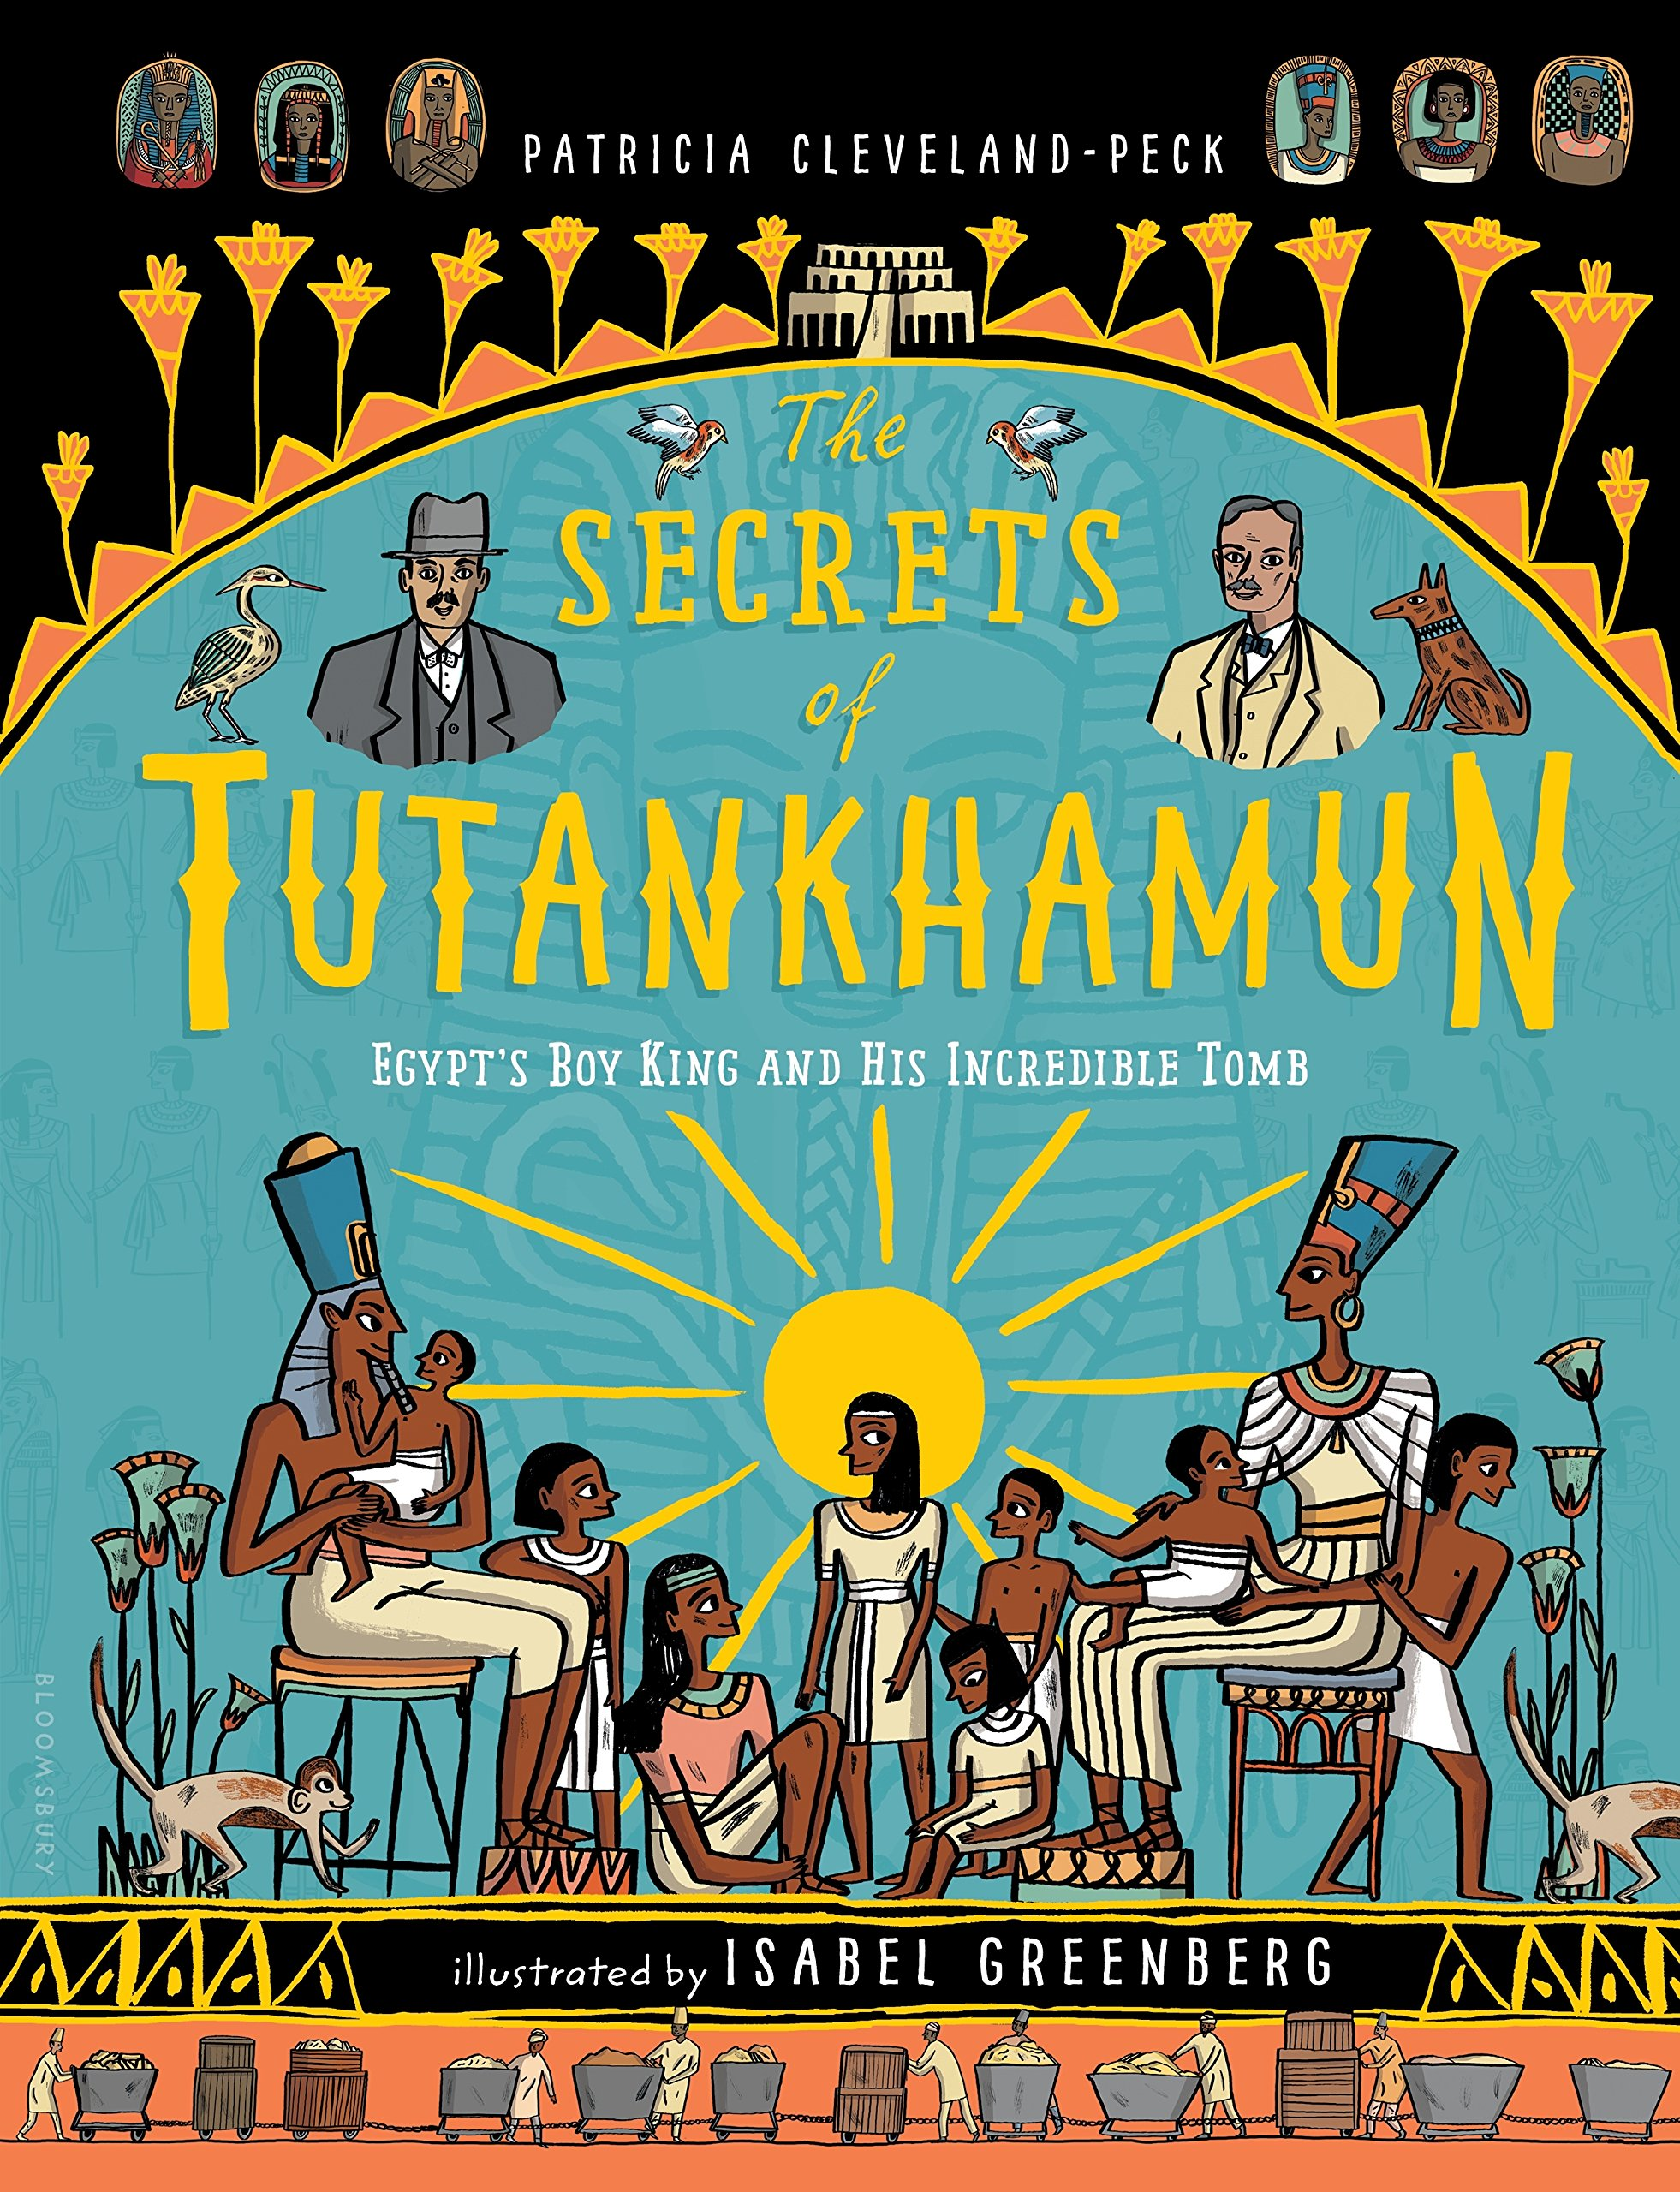 The Secrets of Tutankhamun: Egypt's Boy King and His Incredible Tomb